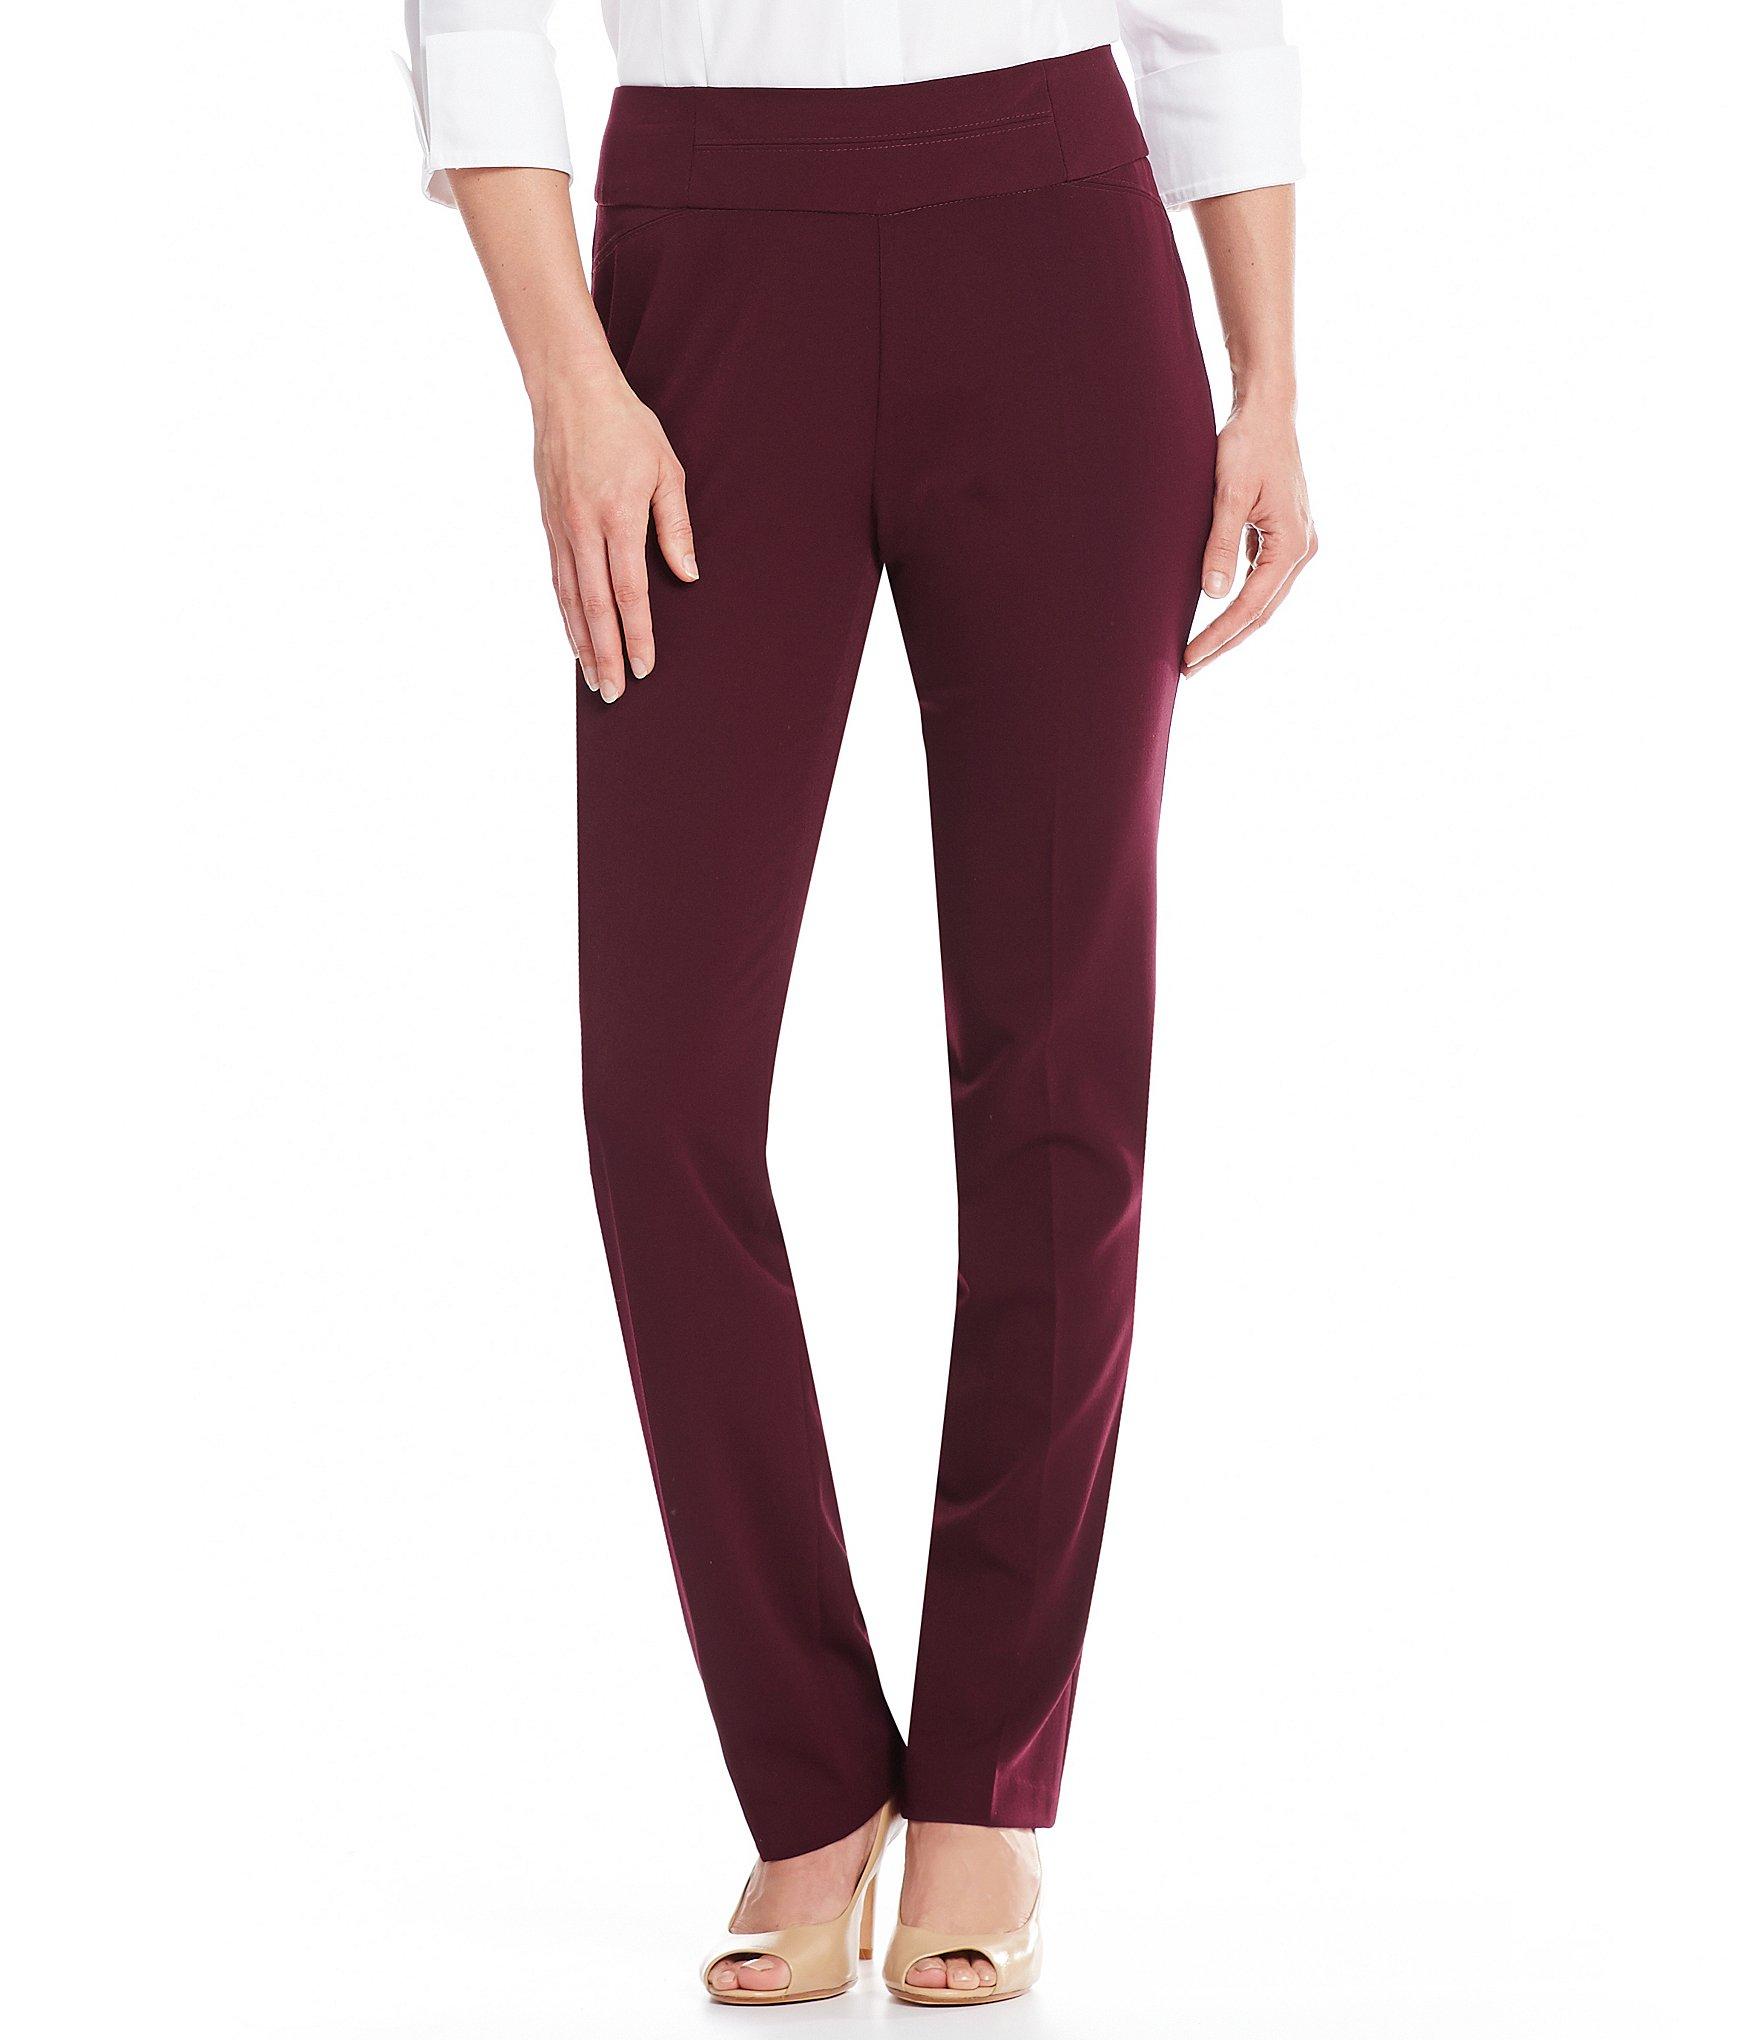 Investments The PARK AVE Fit Pull On Modern Straight Leg Pant